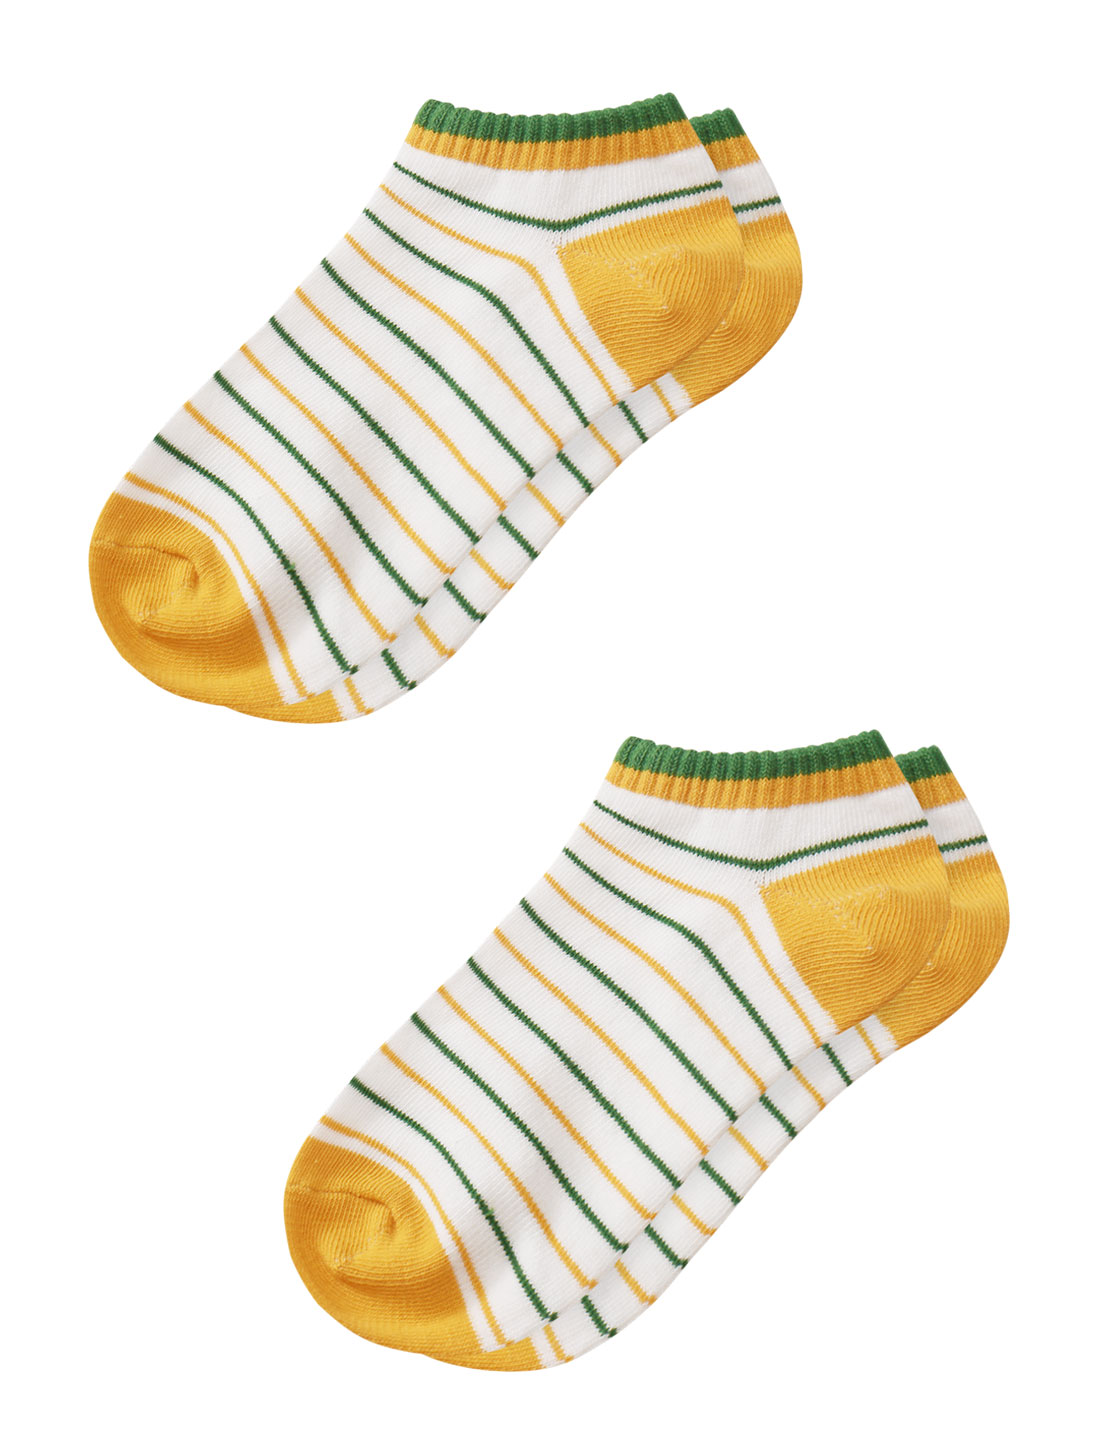 Women Low Cut Elastic Cuffs Stripes Ankle Short Socks 2 Pairs Yellow 7-9